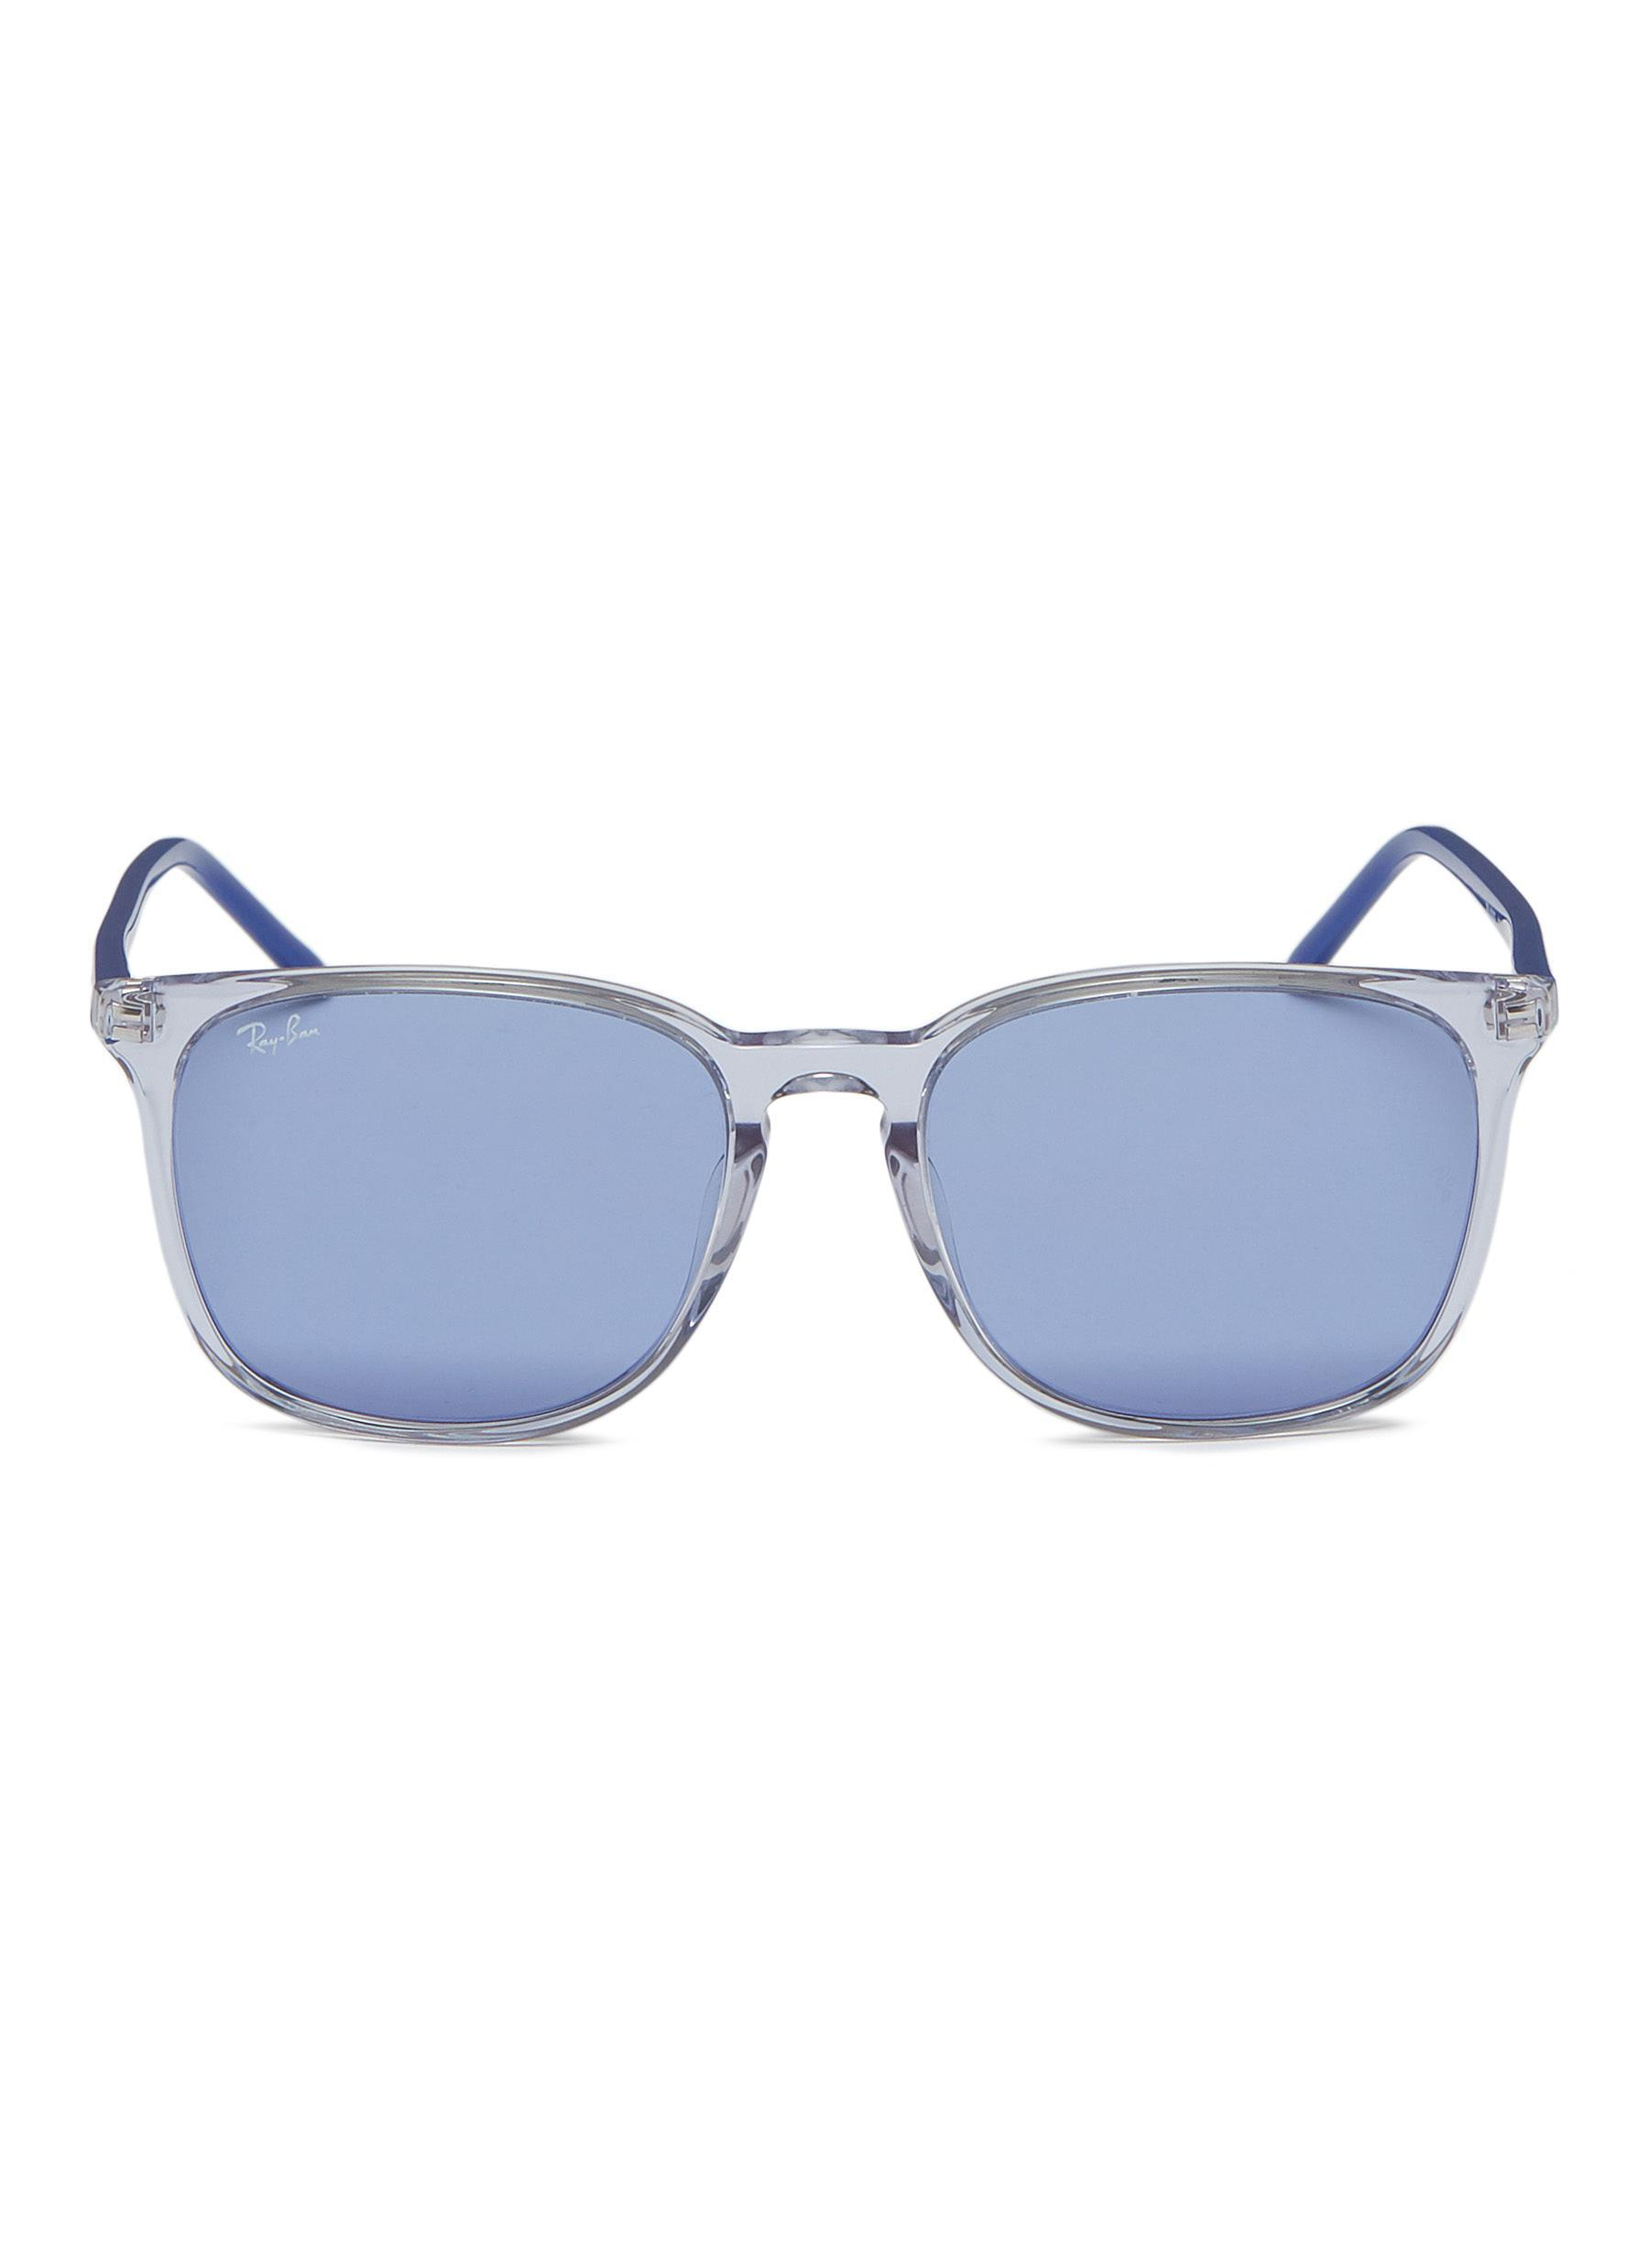 1cbbfe432b Ray-Ban  rb4387  Acetate Square Sunglasses in Blue - Lyst